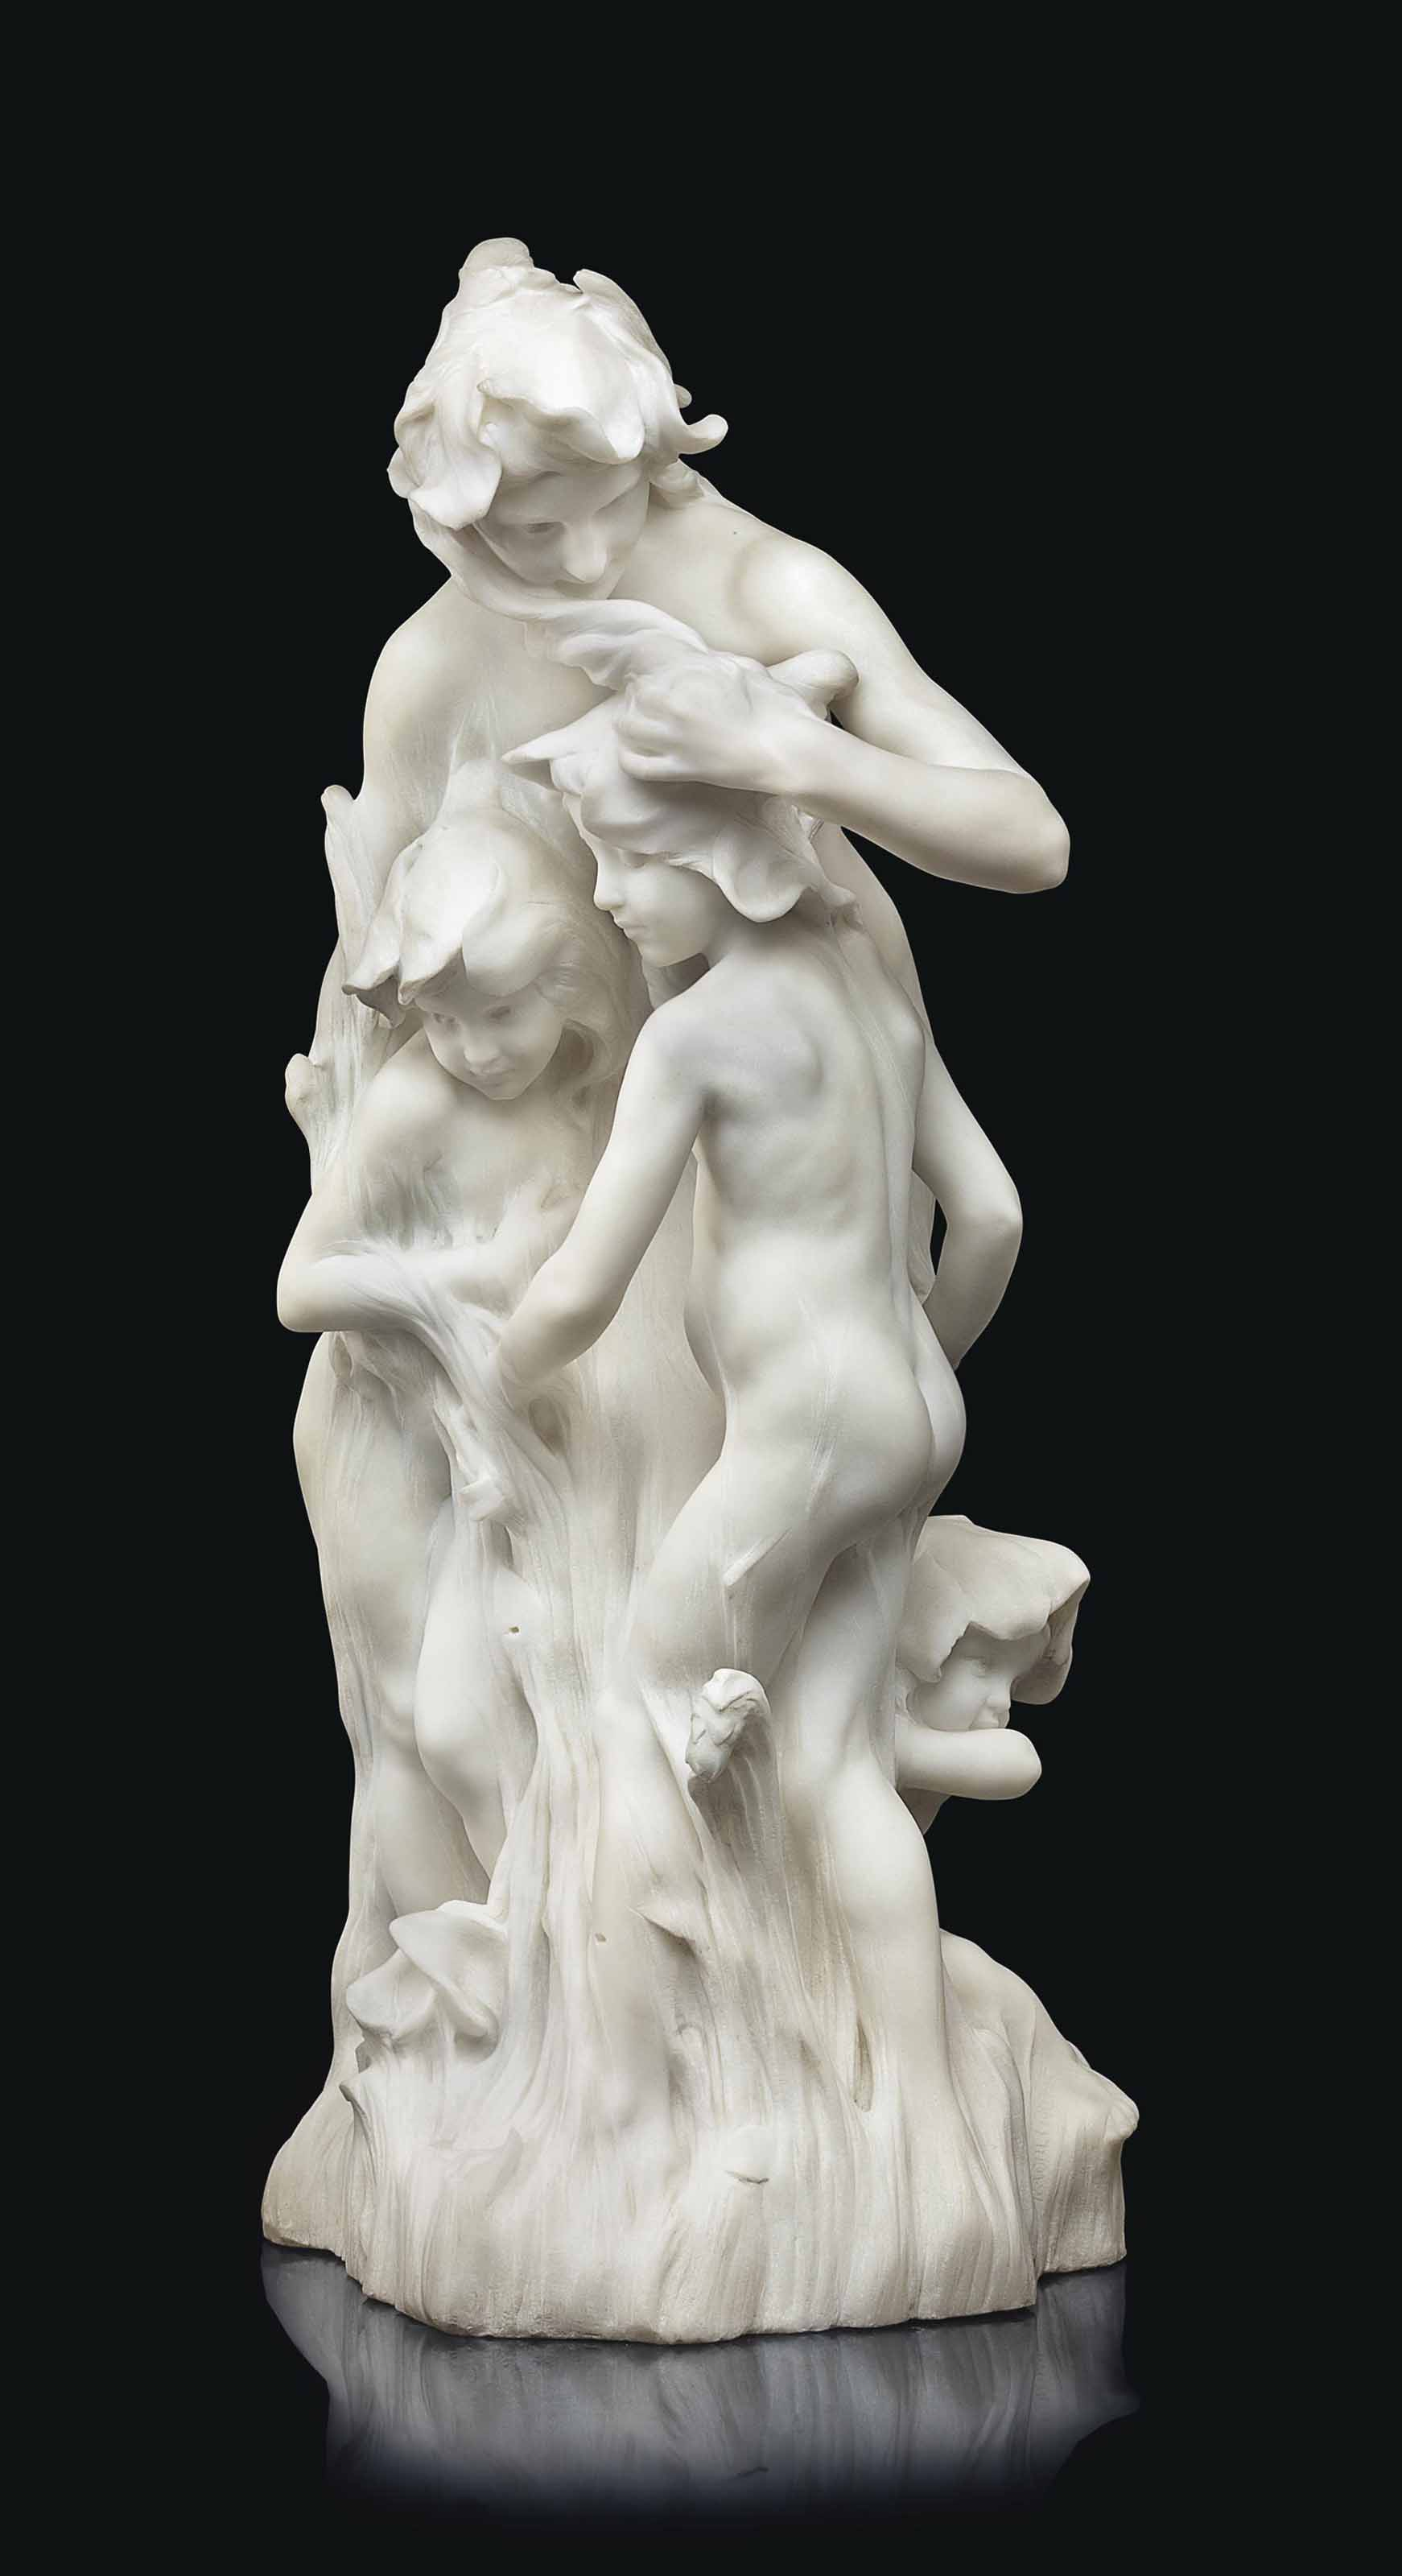 A FRENCH WHITE MARBLE FIGURAL GROUP, TITLED 'LES VIOLETTES'